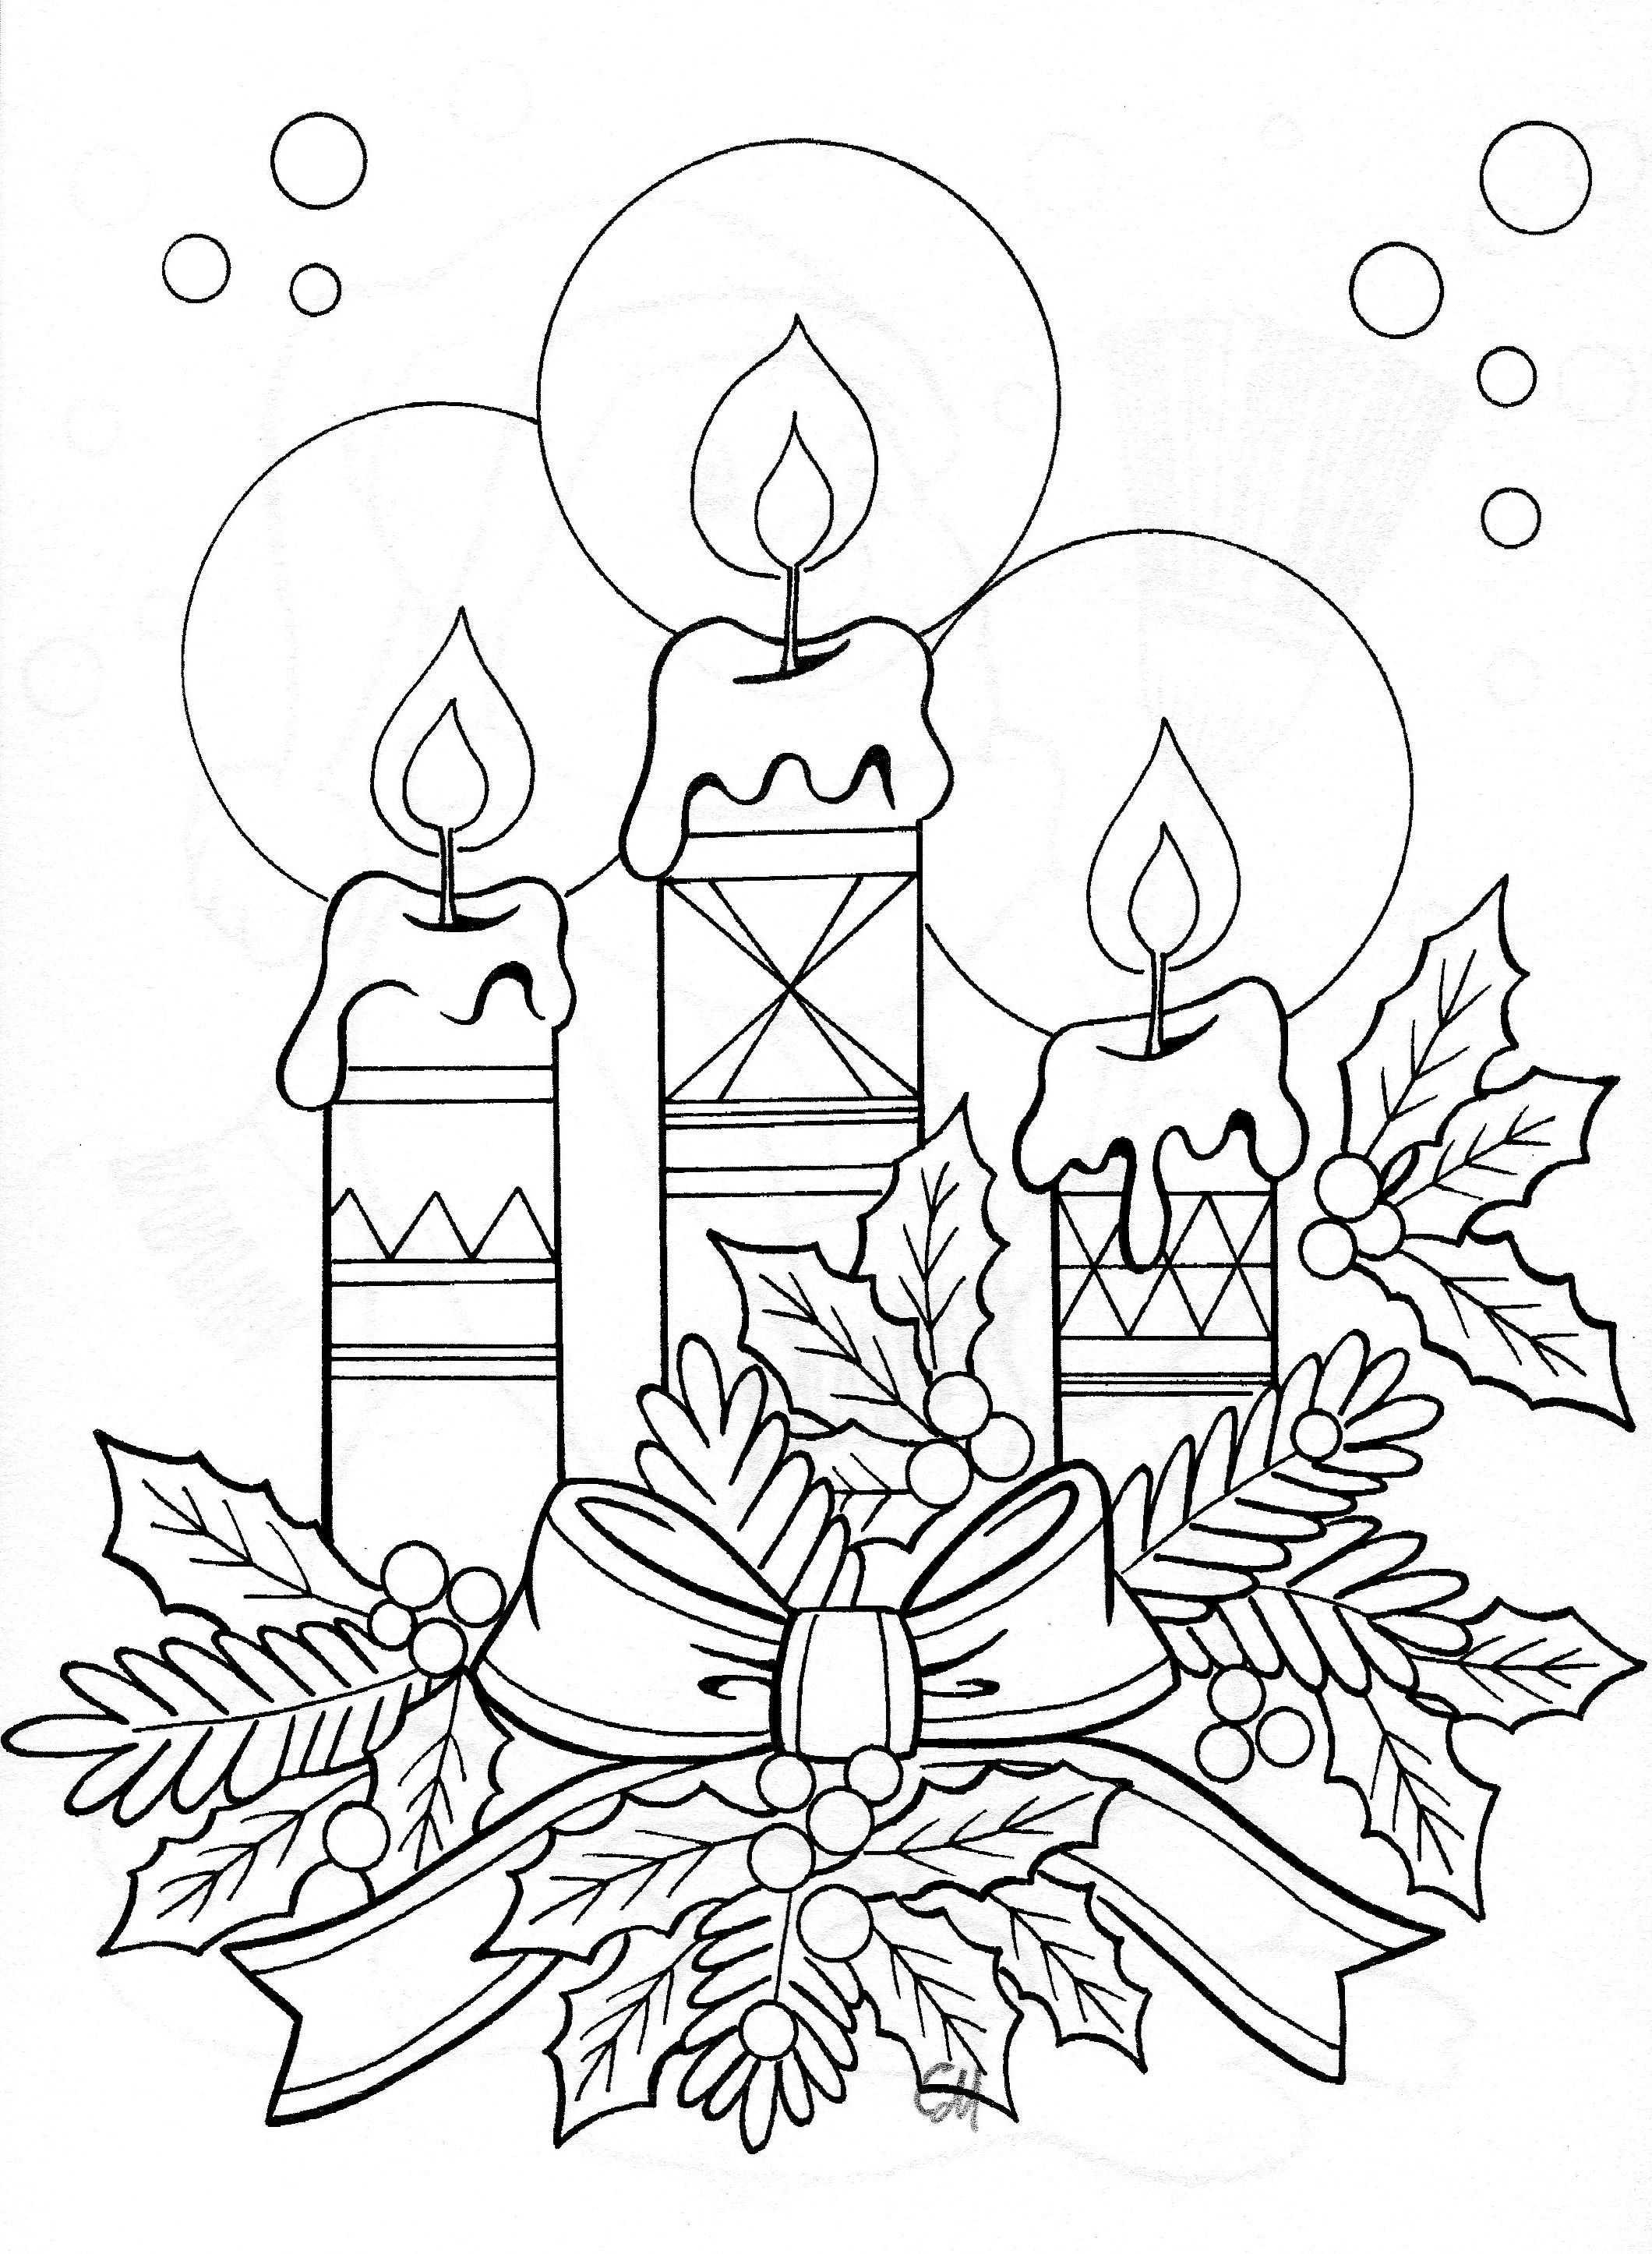 Drawing Of Candle Arrangement Christmas Coloring Pages